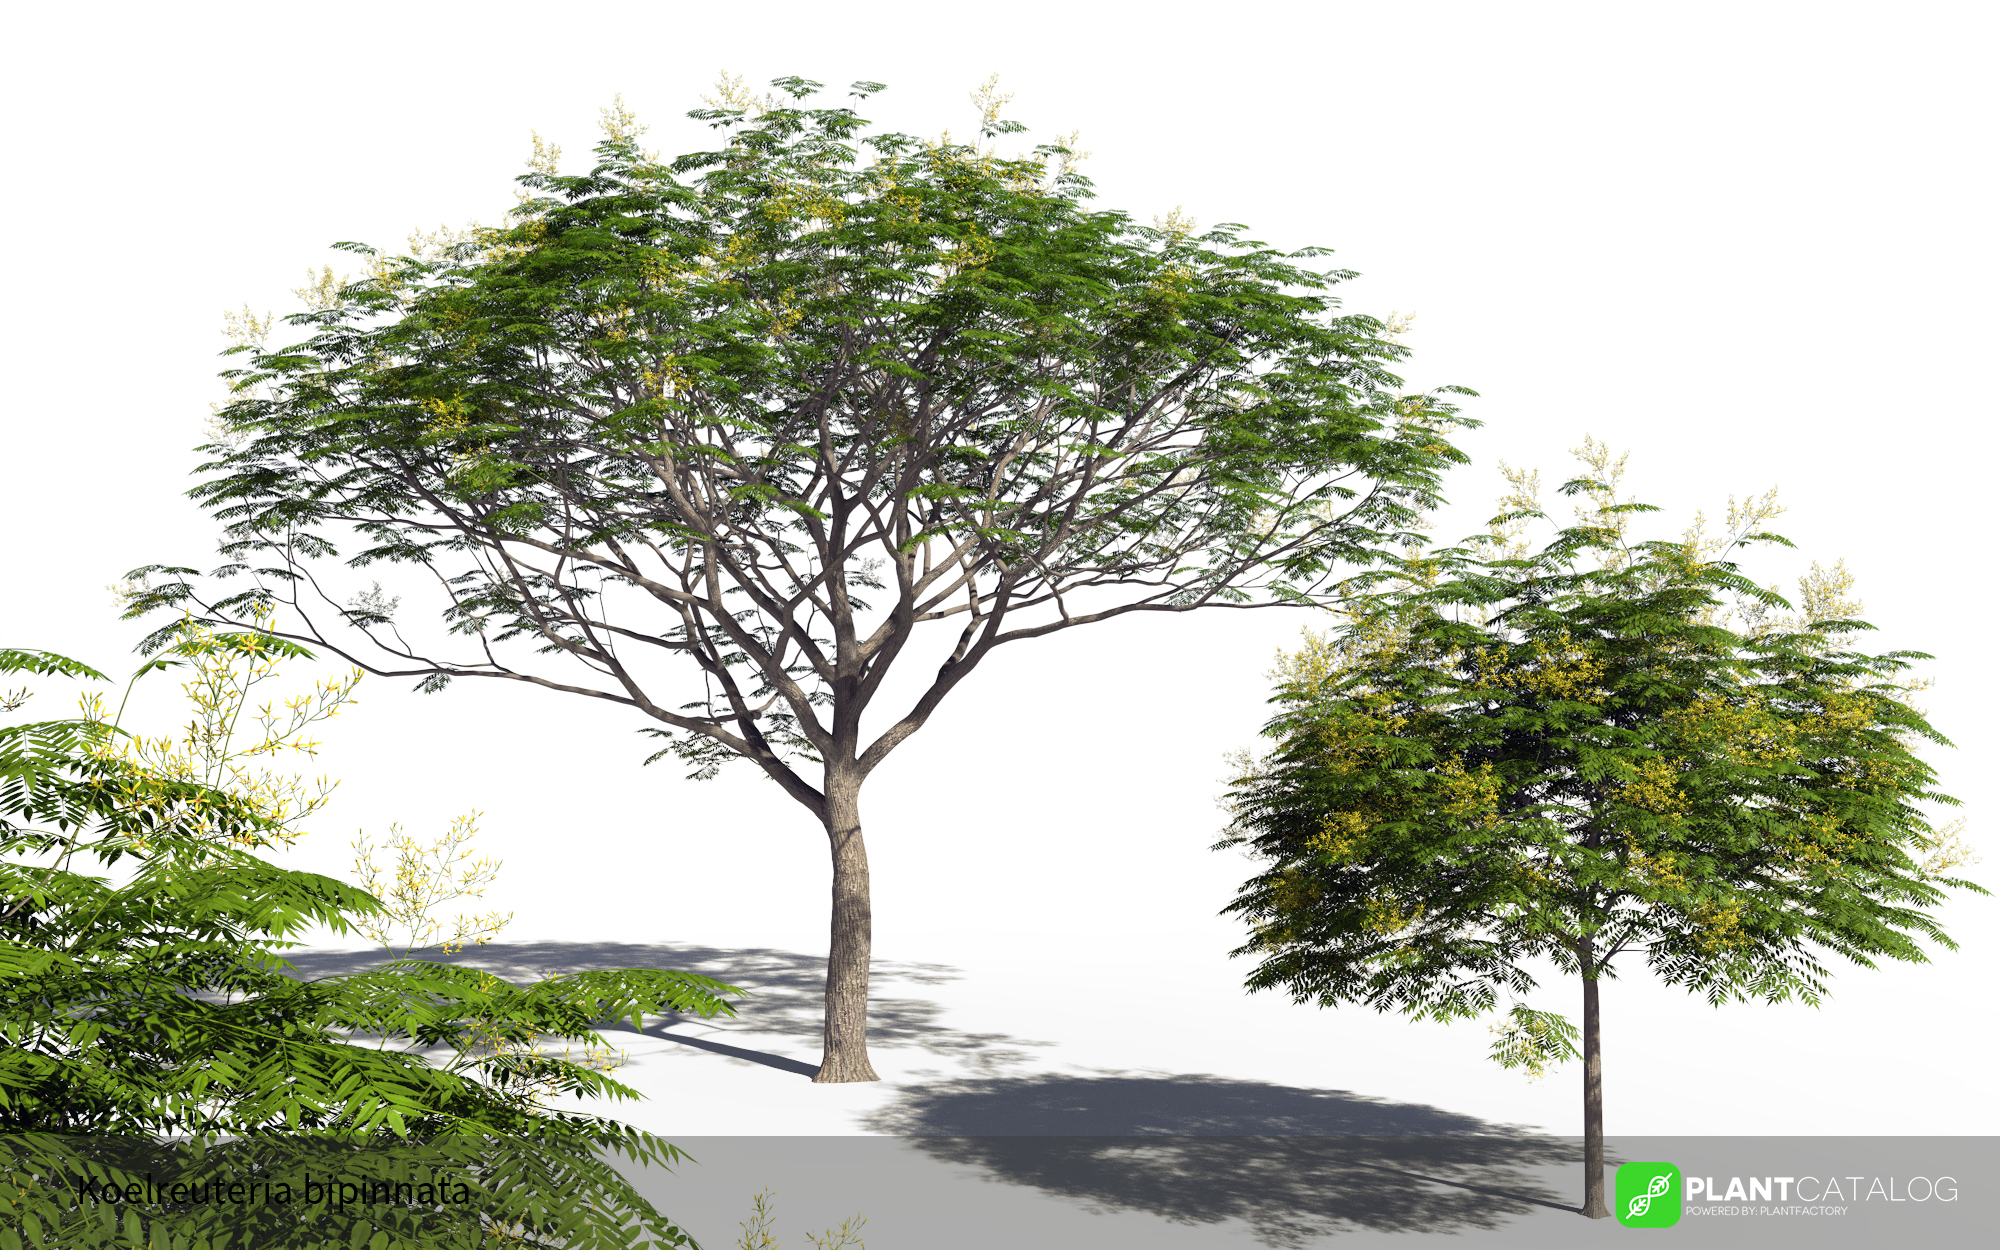 3D model of the Chinese flame tree - Koelreuteria bipinnata - from the PlantCatalog, rendered in VUE